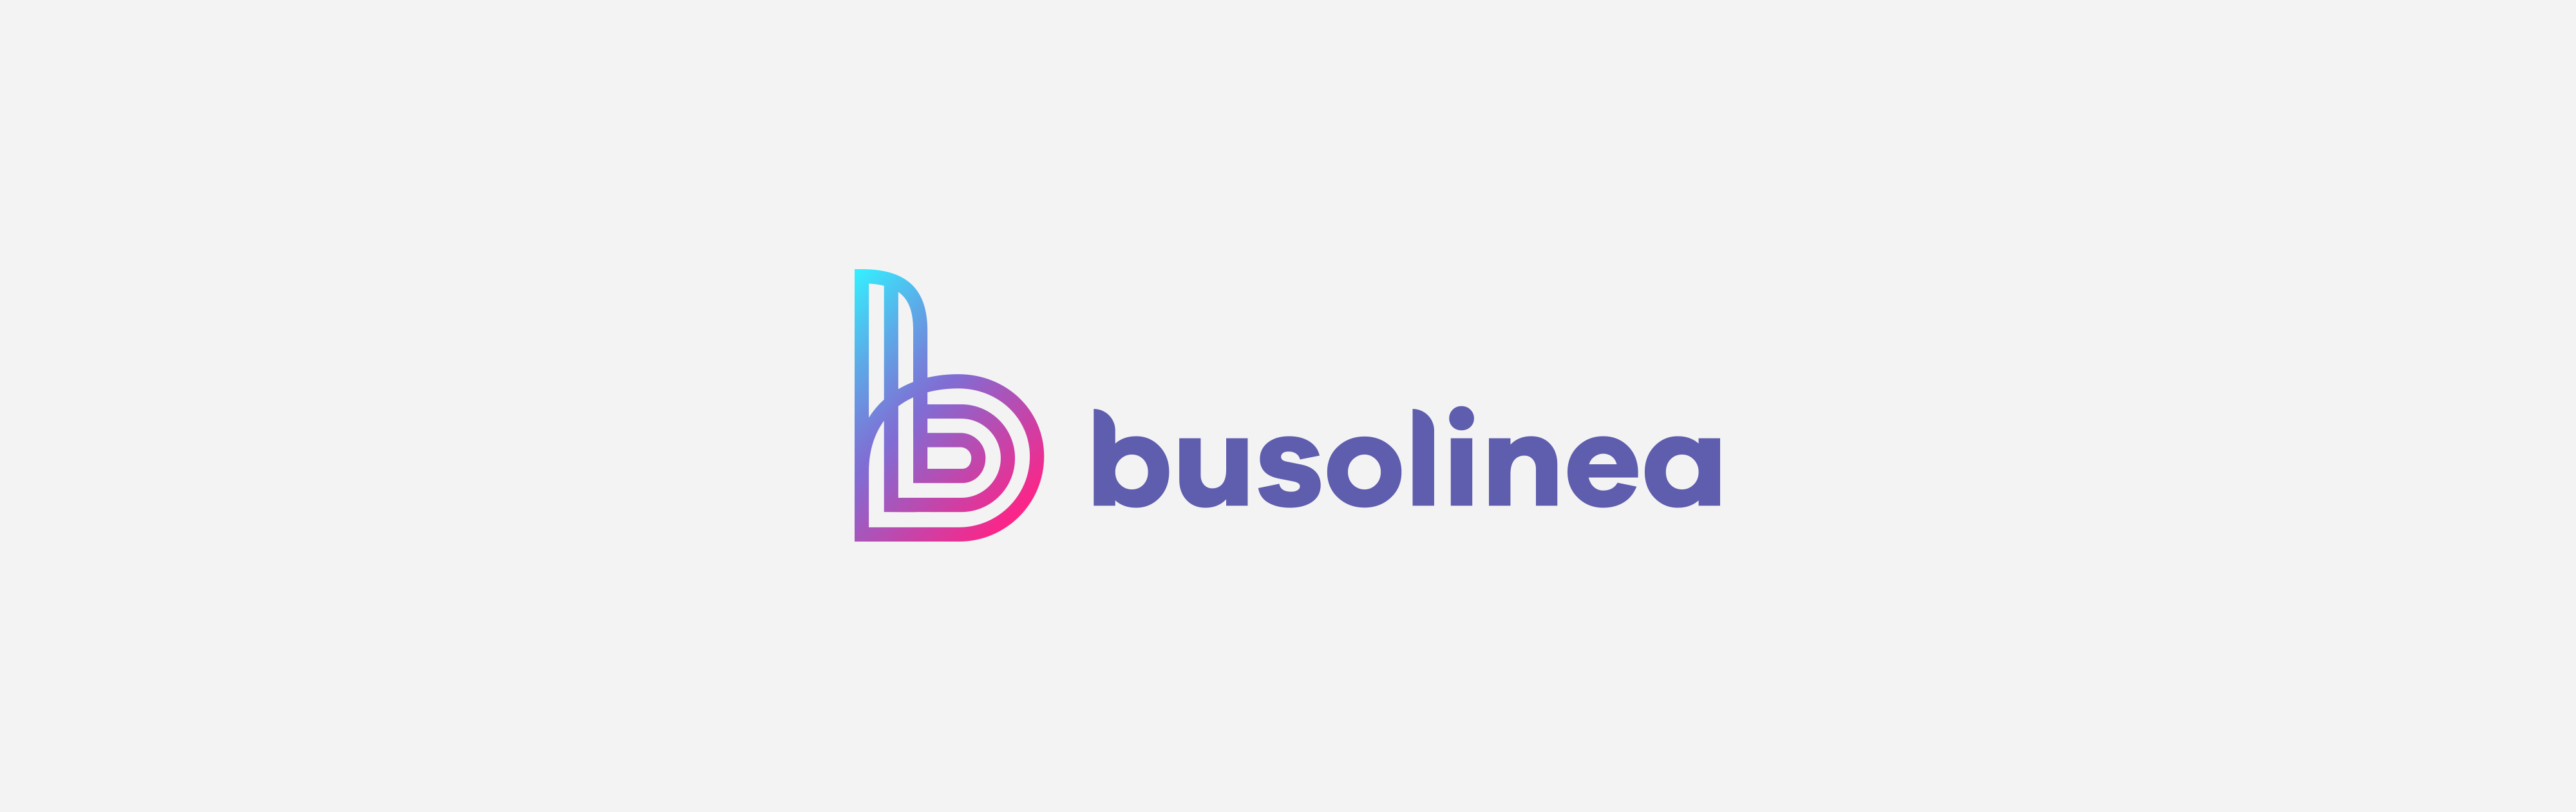 Busolinea Branding by The Woork Co